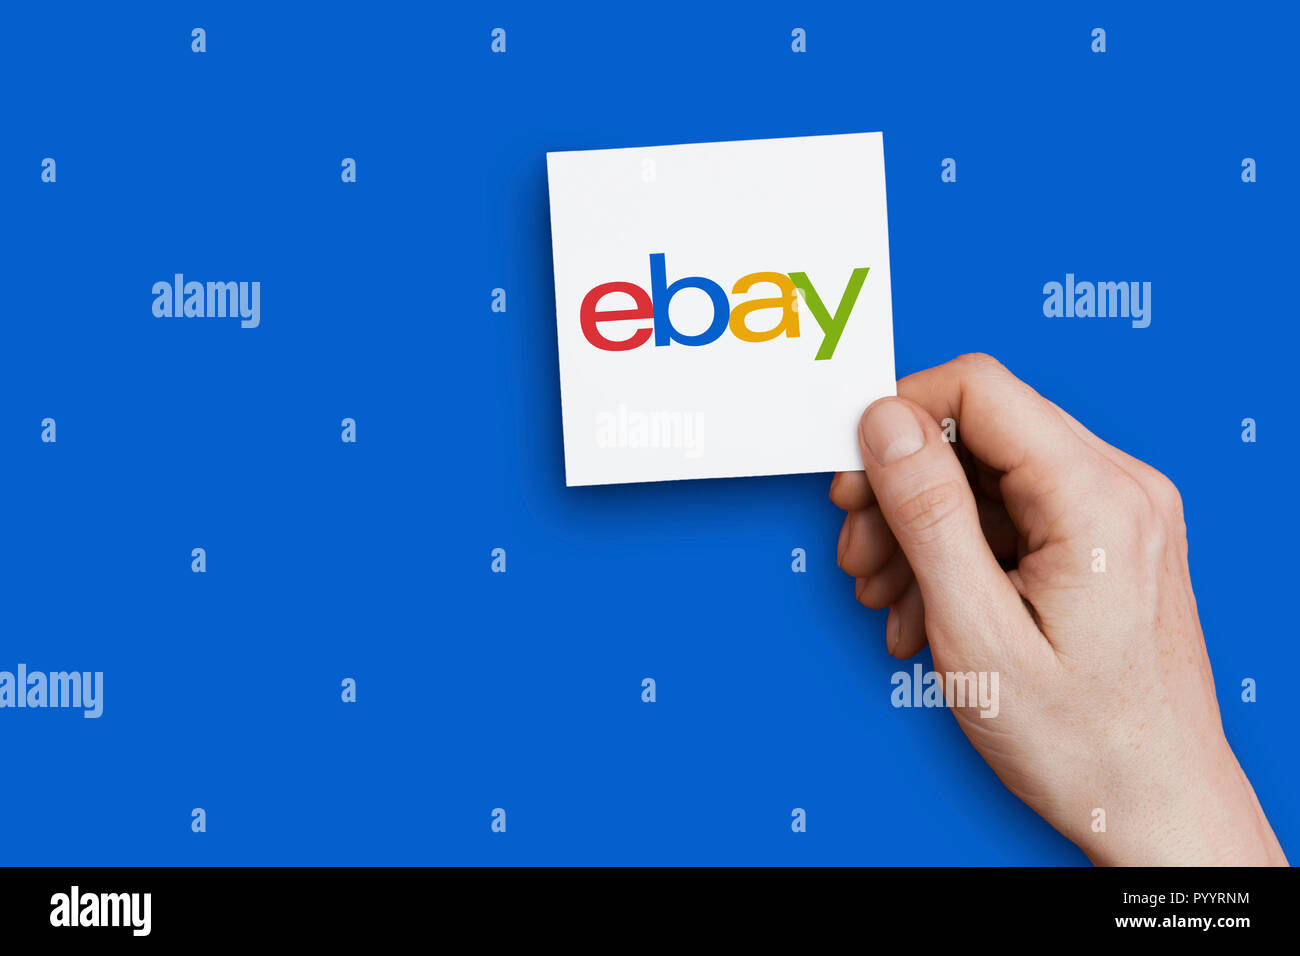 London Uk October 30th 2018 Hand Holding Ebay Logo Ebay Is An Online Marketplace Stock Photo Alamy